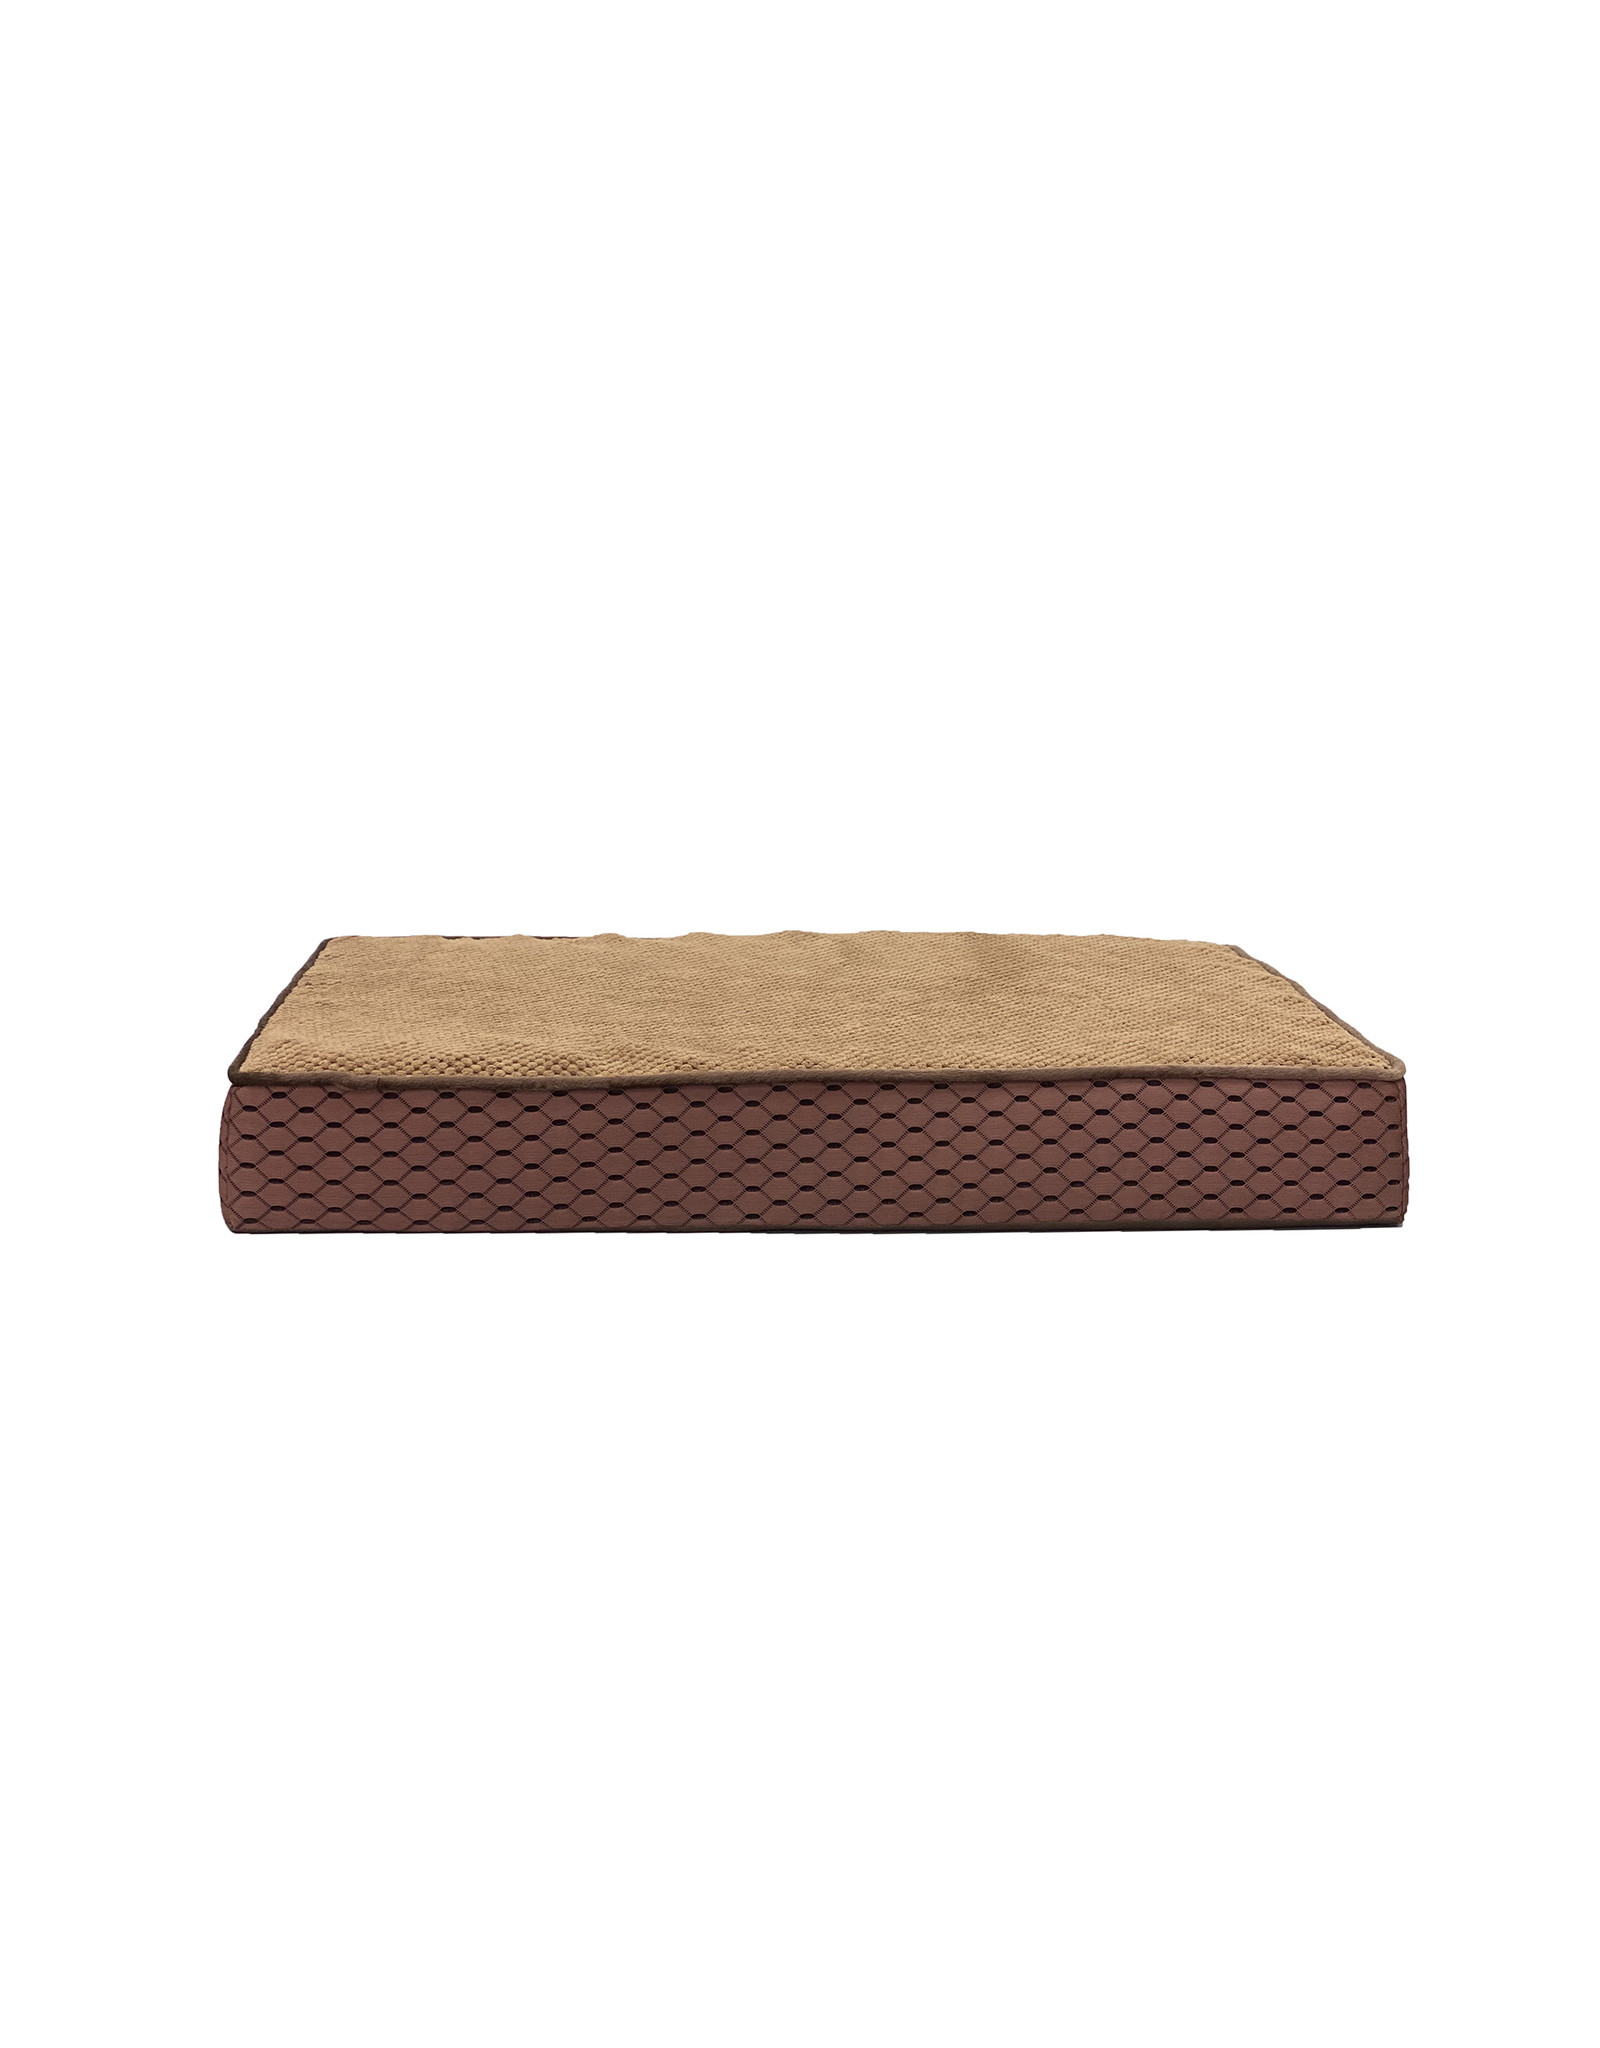 """Ethical Pet / Spot Ethical Pet Sleep Zone 29"""" Support Bed with Bamboo Charcoal in Brown"""